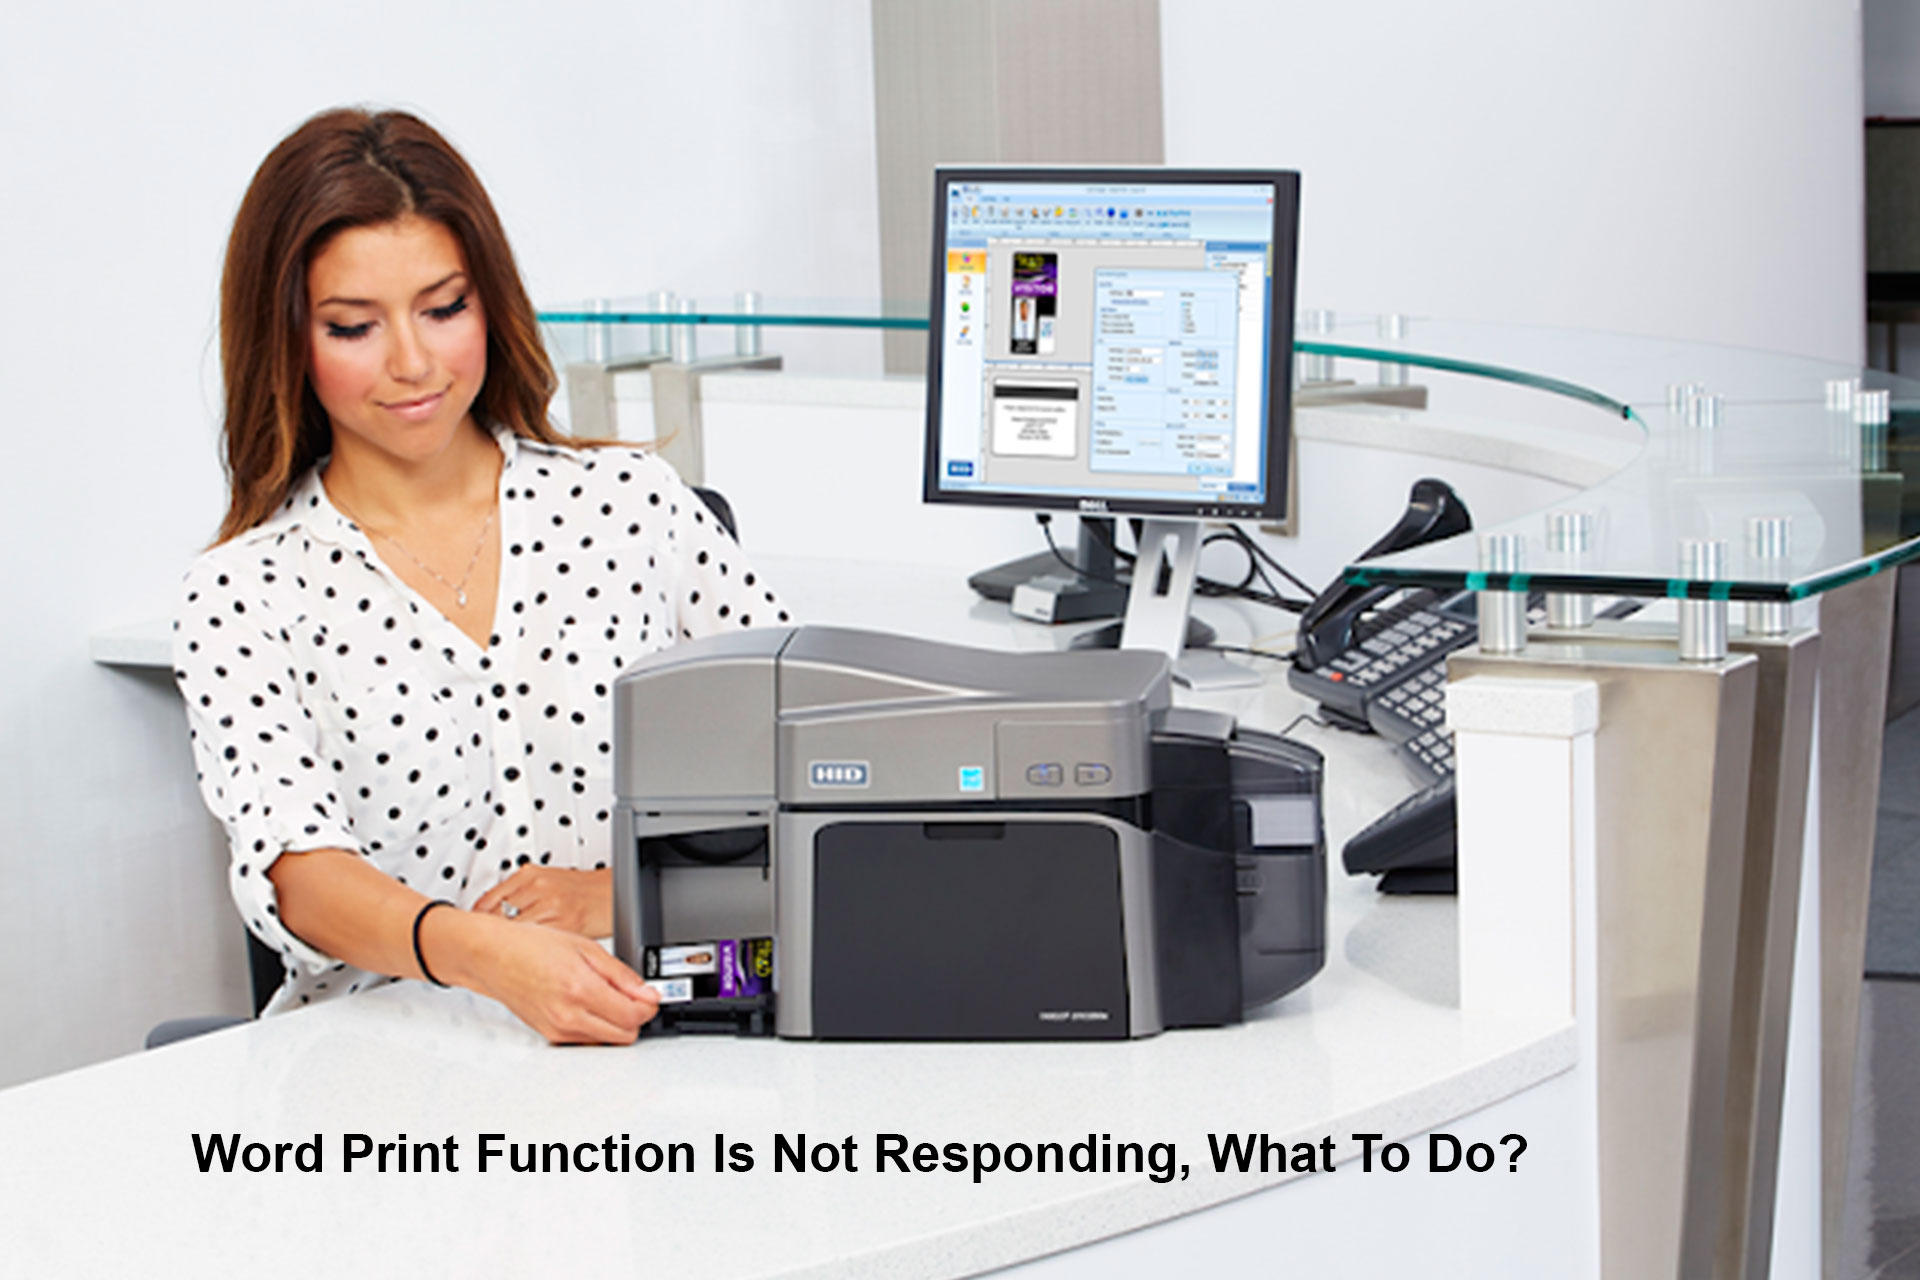 Word Print Function Is Not Responding, What To Do?